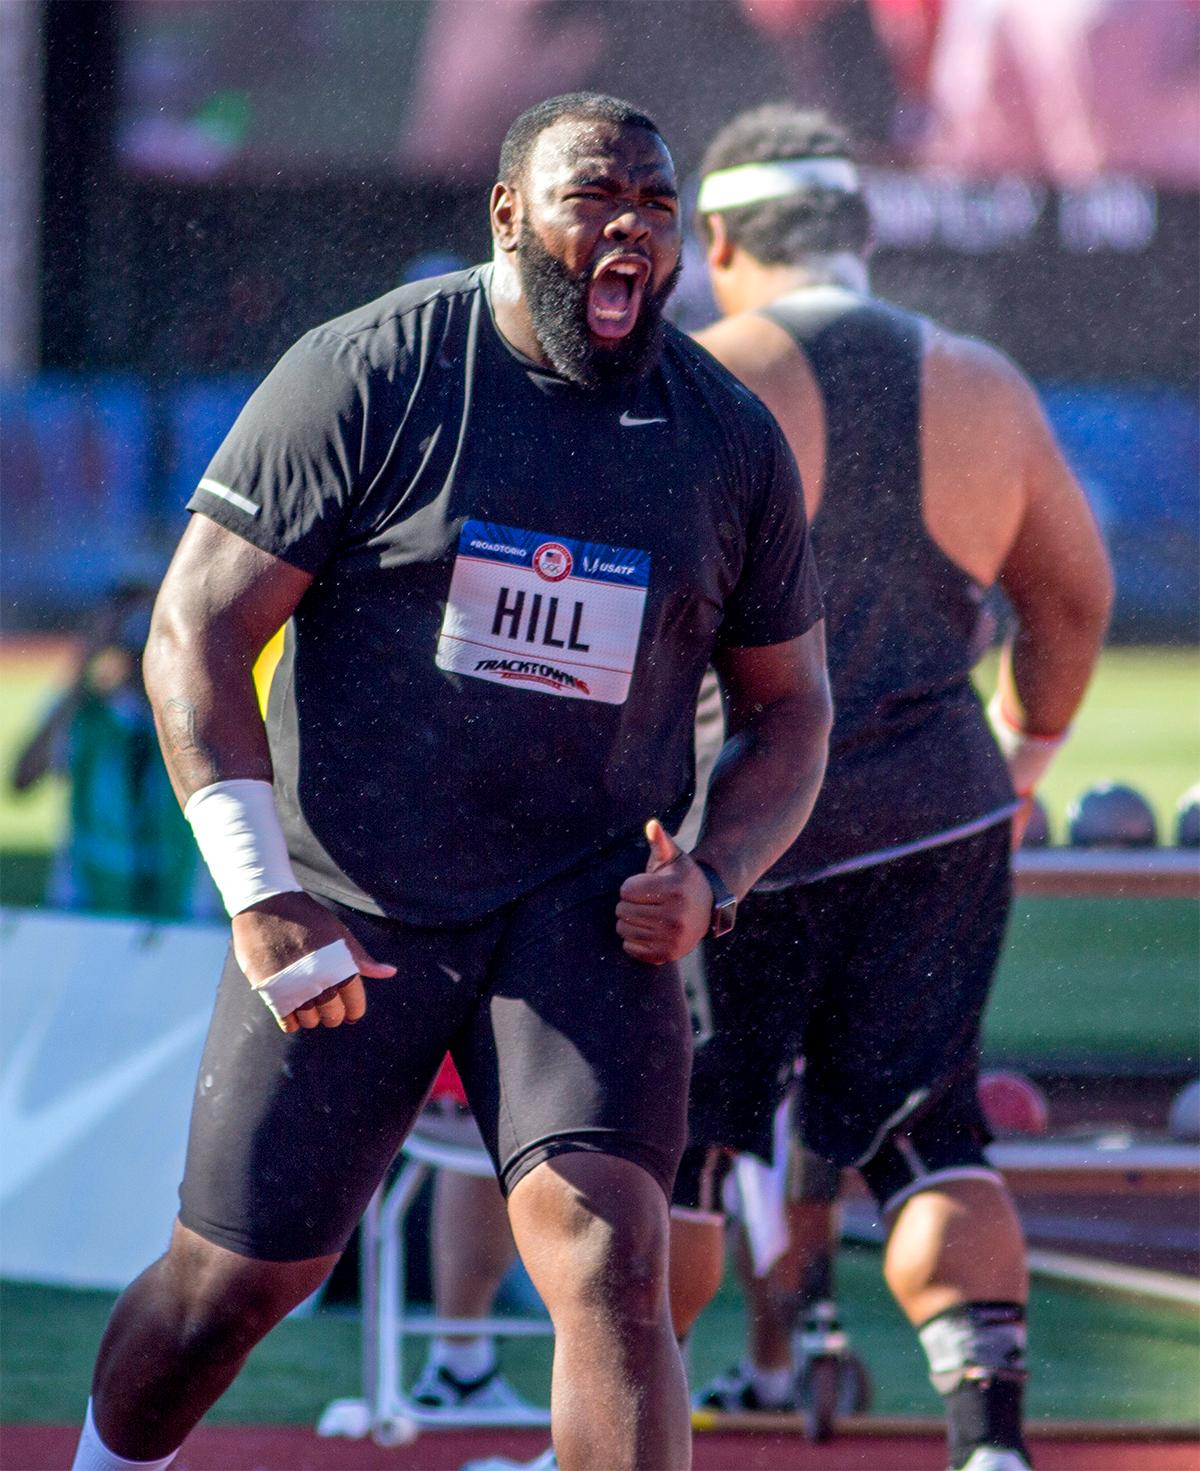 Darrel Hill let's out a yell upon achieving a new personal record in the shot put competition. Hill placed fourth in the shot put with a final distance of 20.56m. Day one of the U.S. Olympic Trials Track and Field began on Friday at Hayward Field in Eugene, Oregon and will continue through July 10. Photo by August Frank, Oregon News Lab